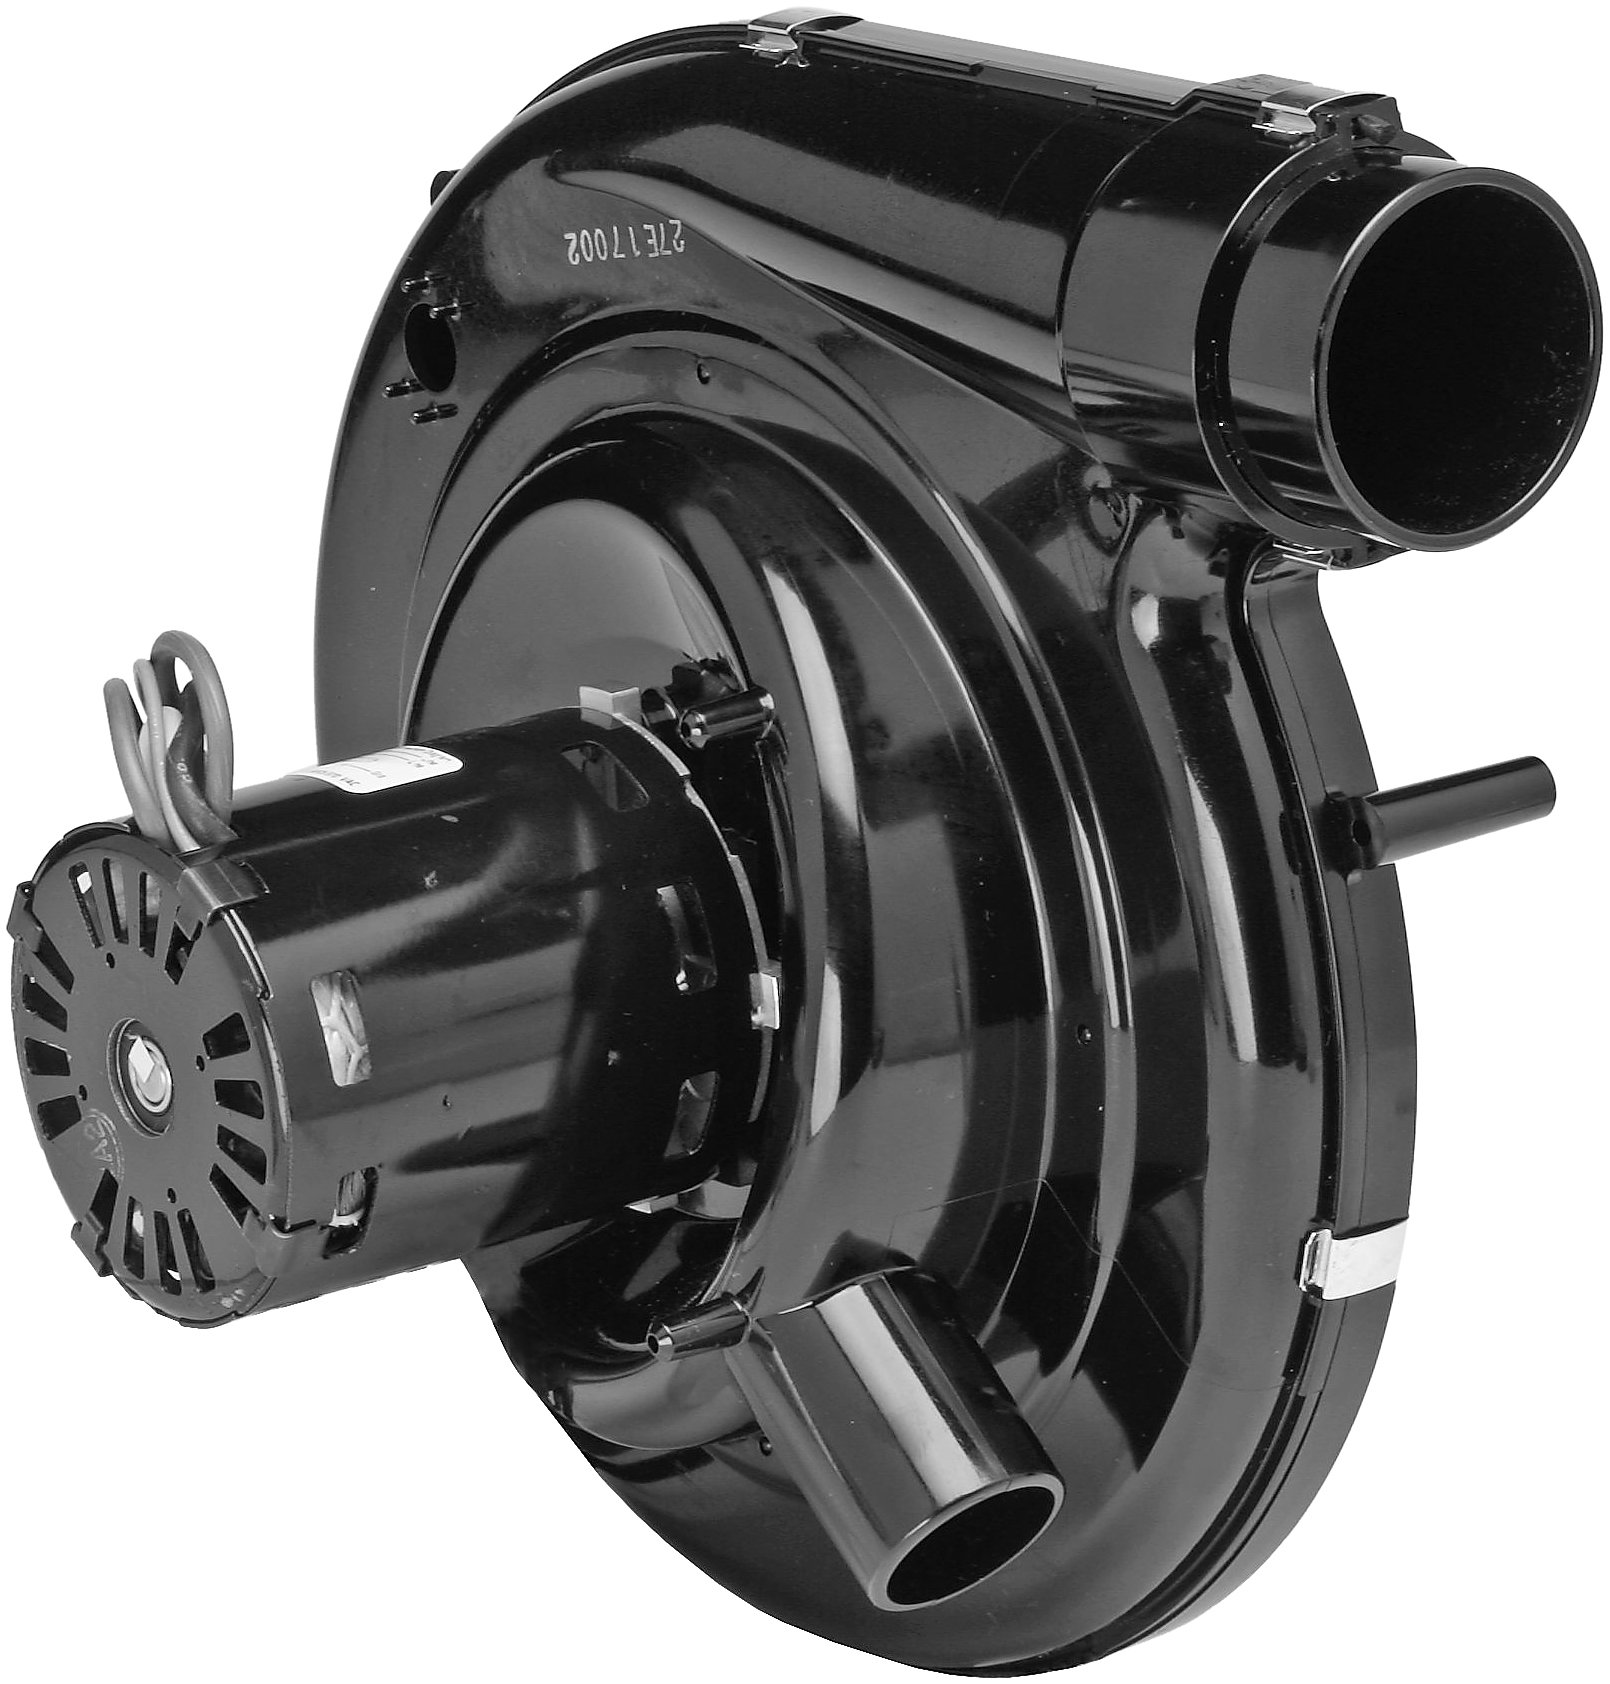 Fasco A173 Specific Purpose Blowers, Inter City 7062-4578, 1011350 by Fasco (Image #1)